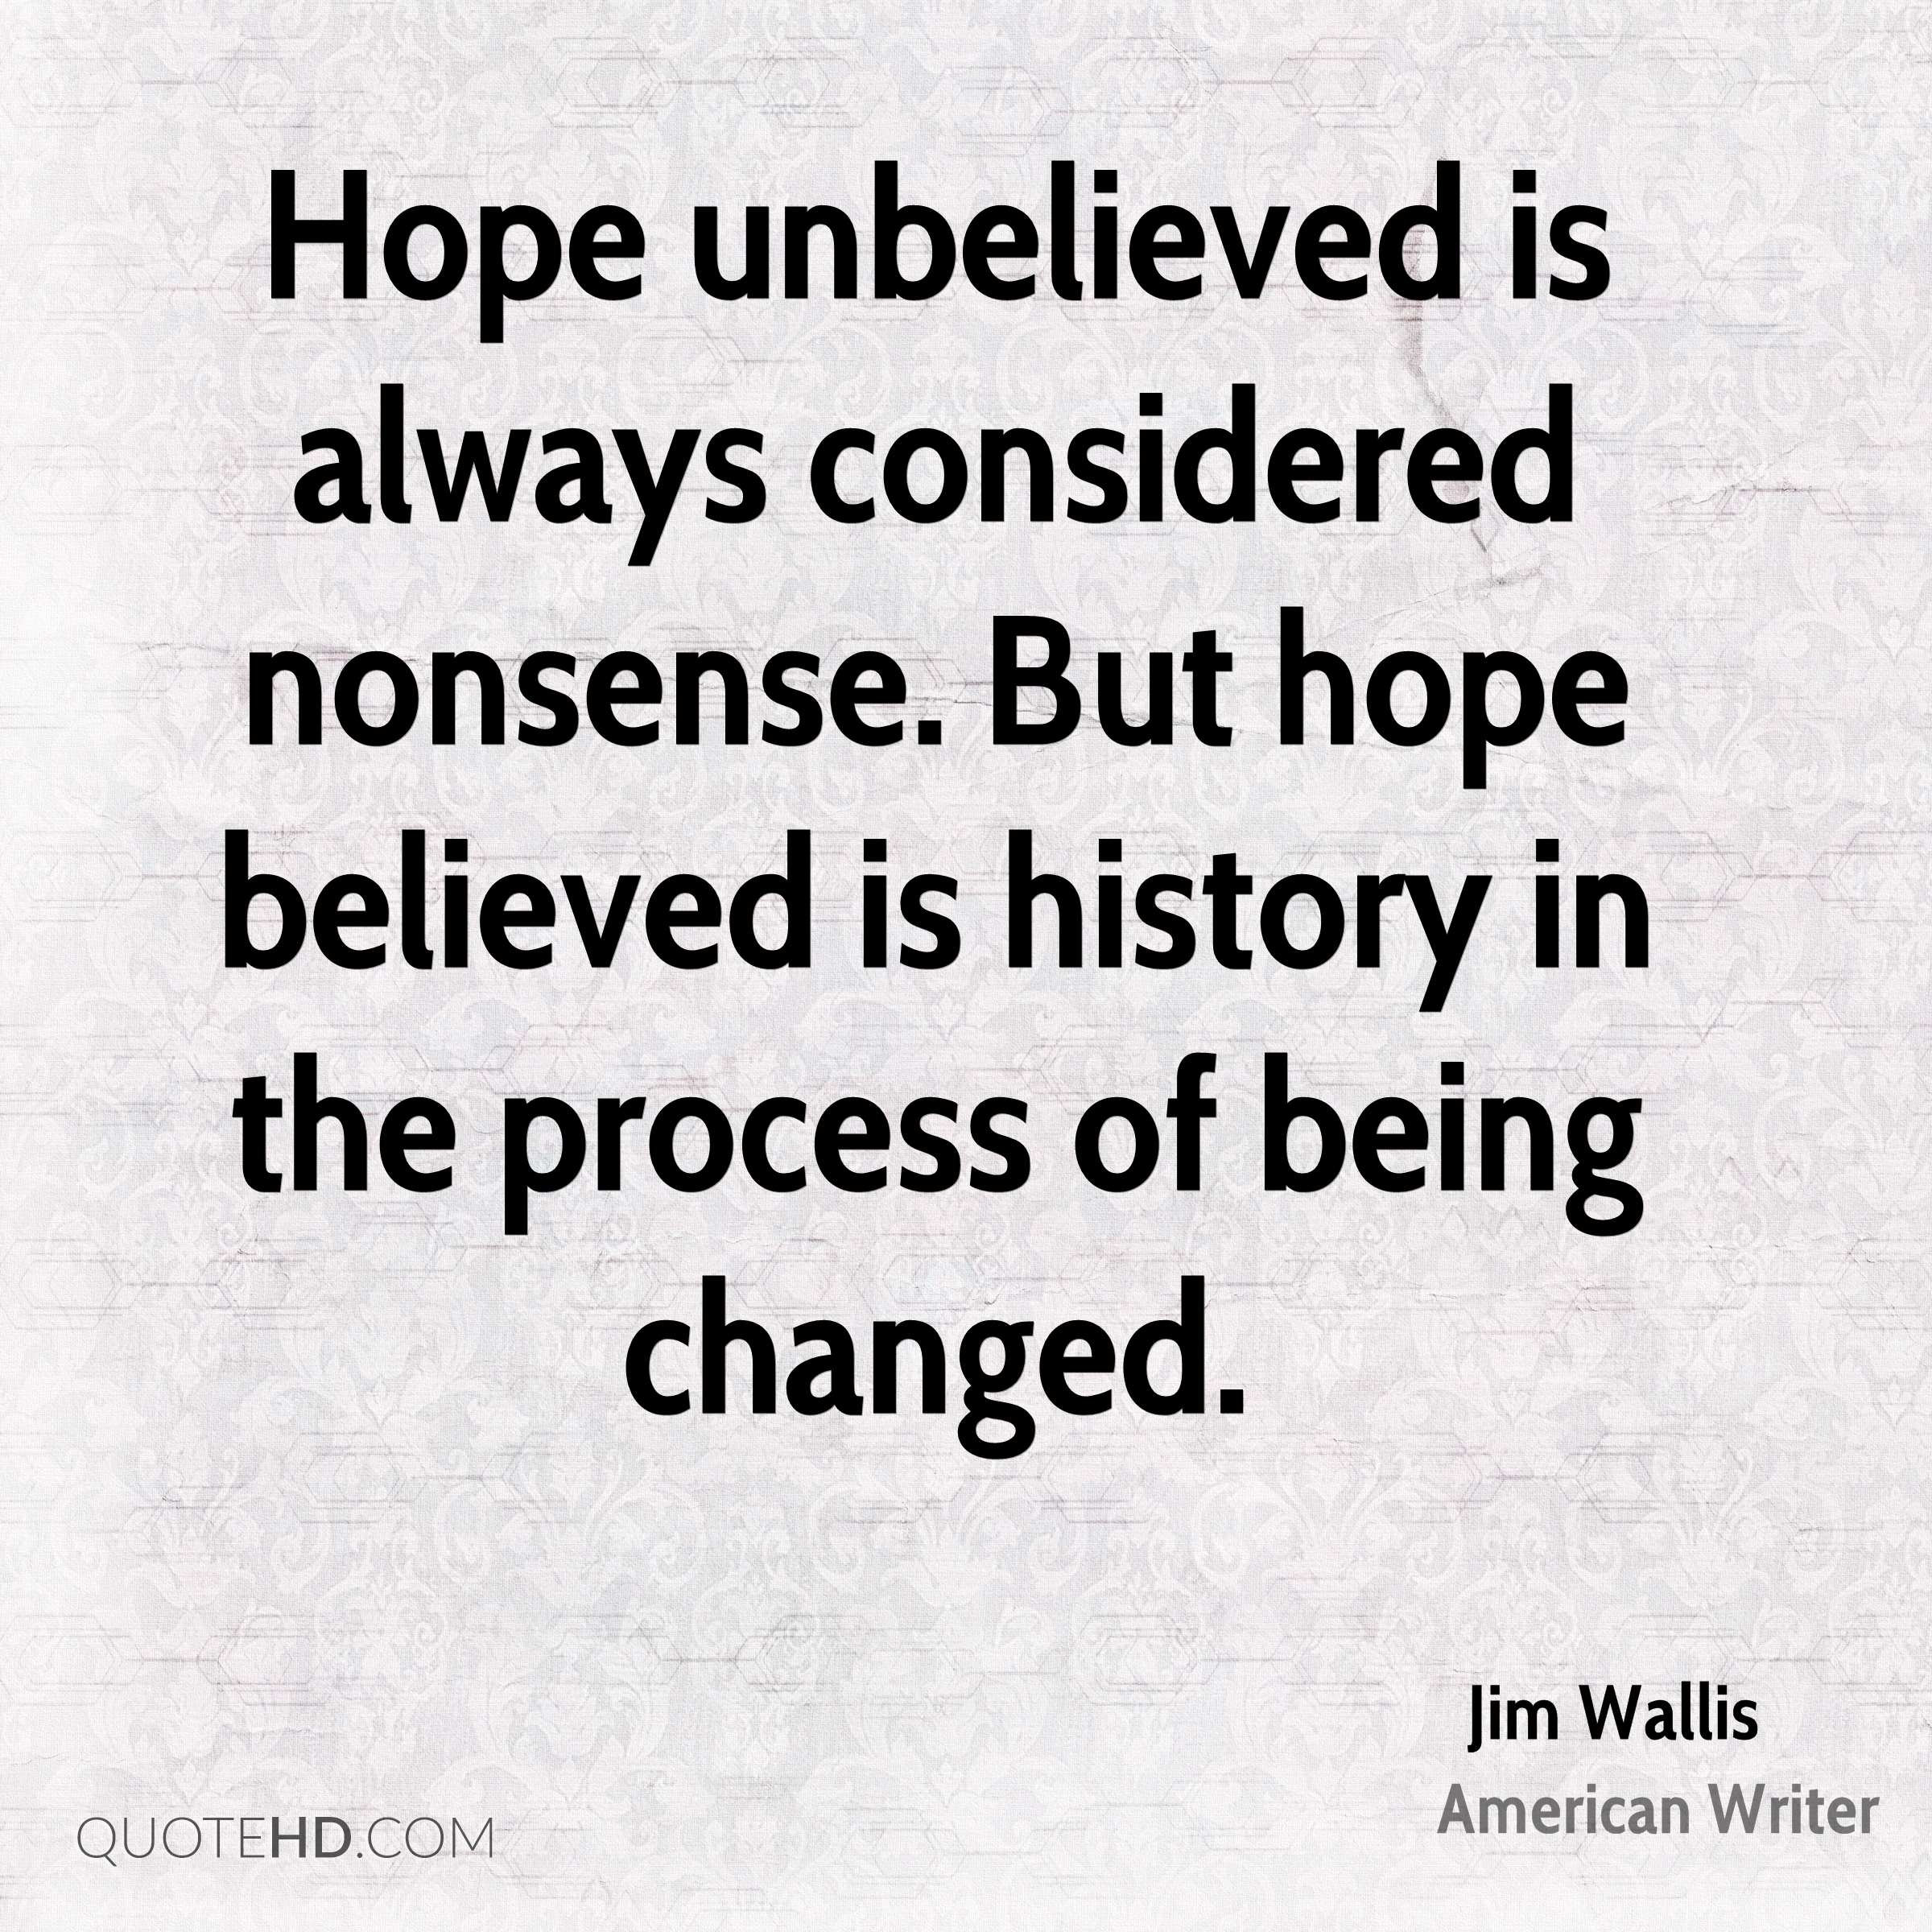 Hope unbelieved is always considered nonsense. But hope believed is history in the process of being changed.